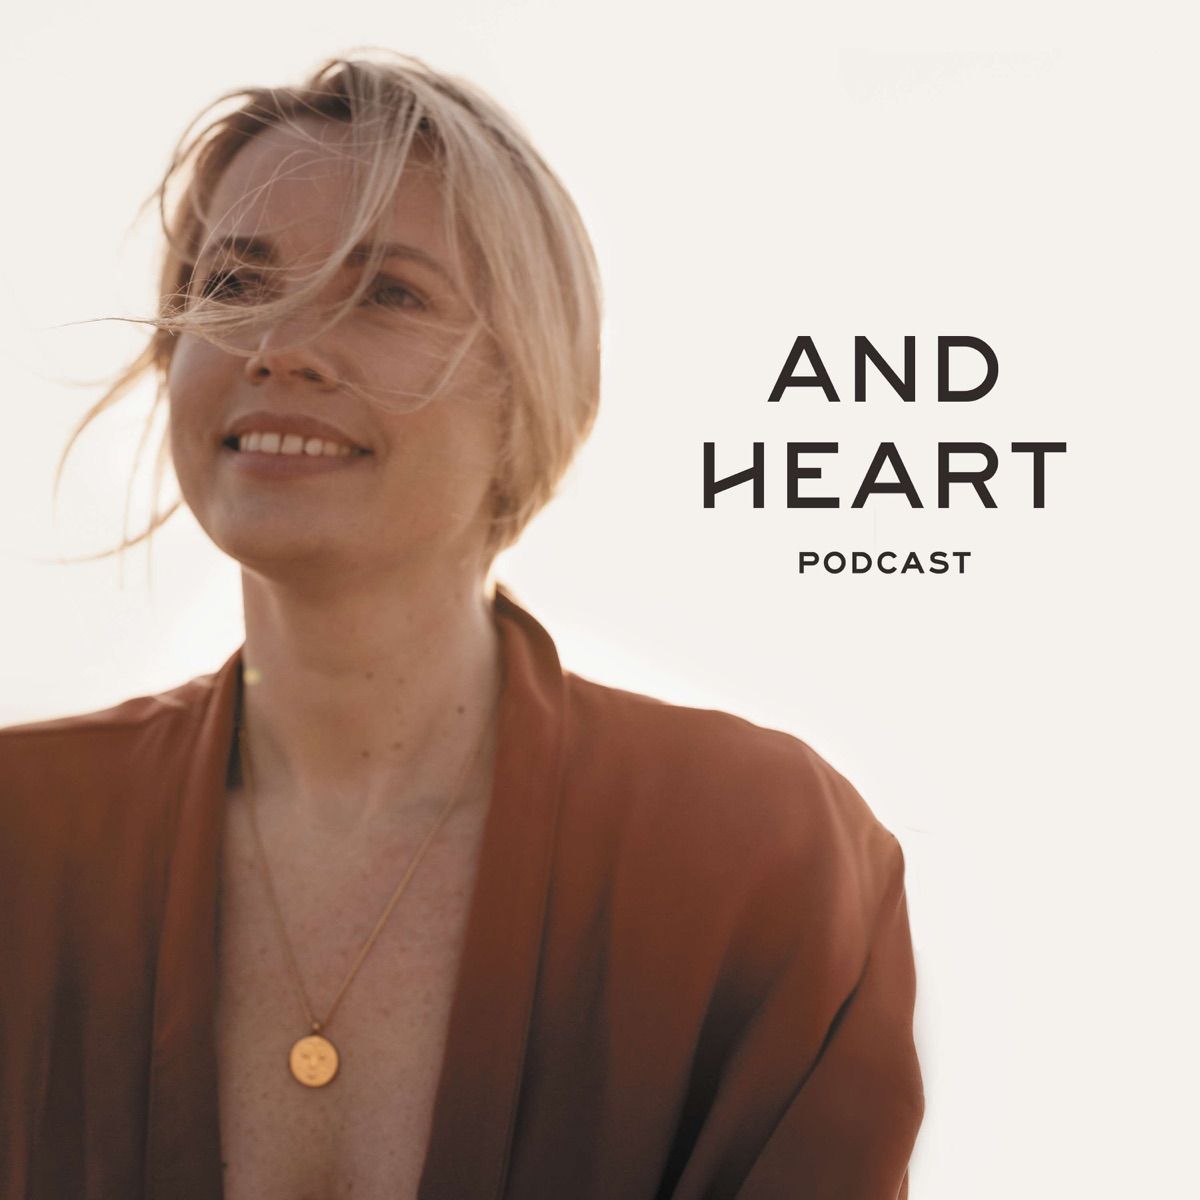 And Heart Podcast